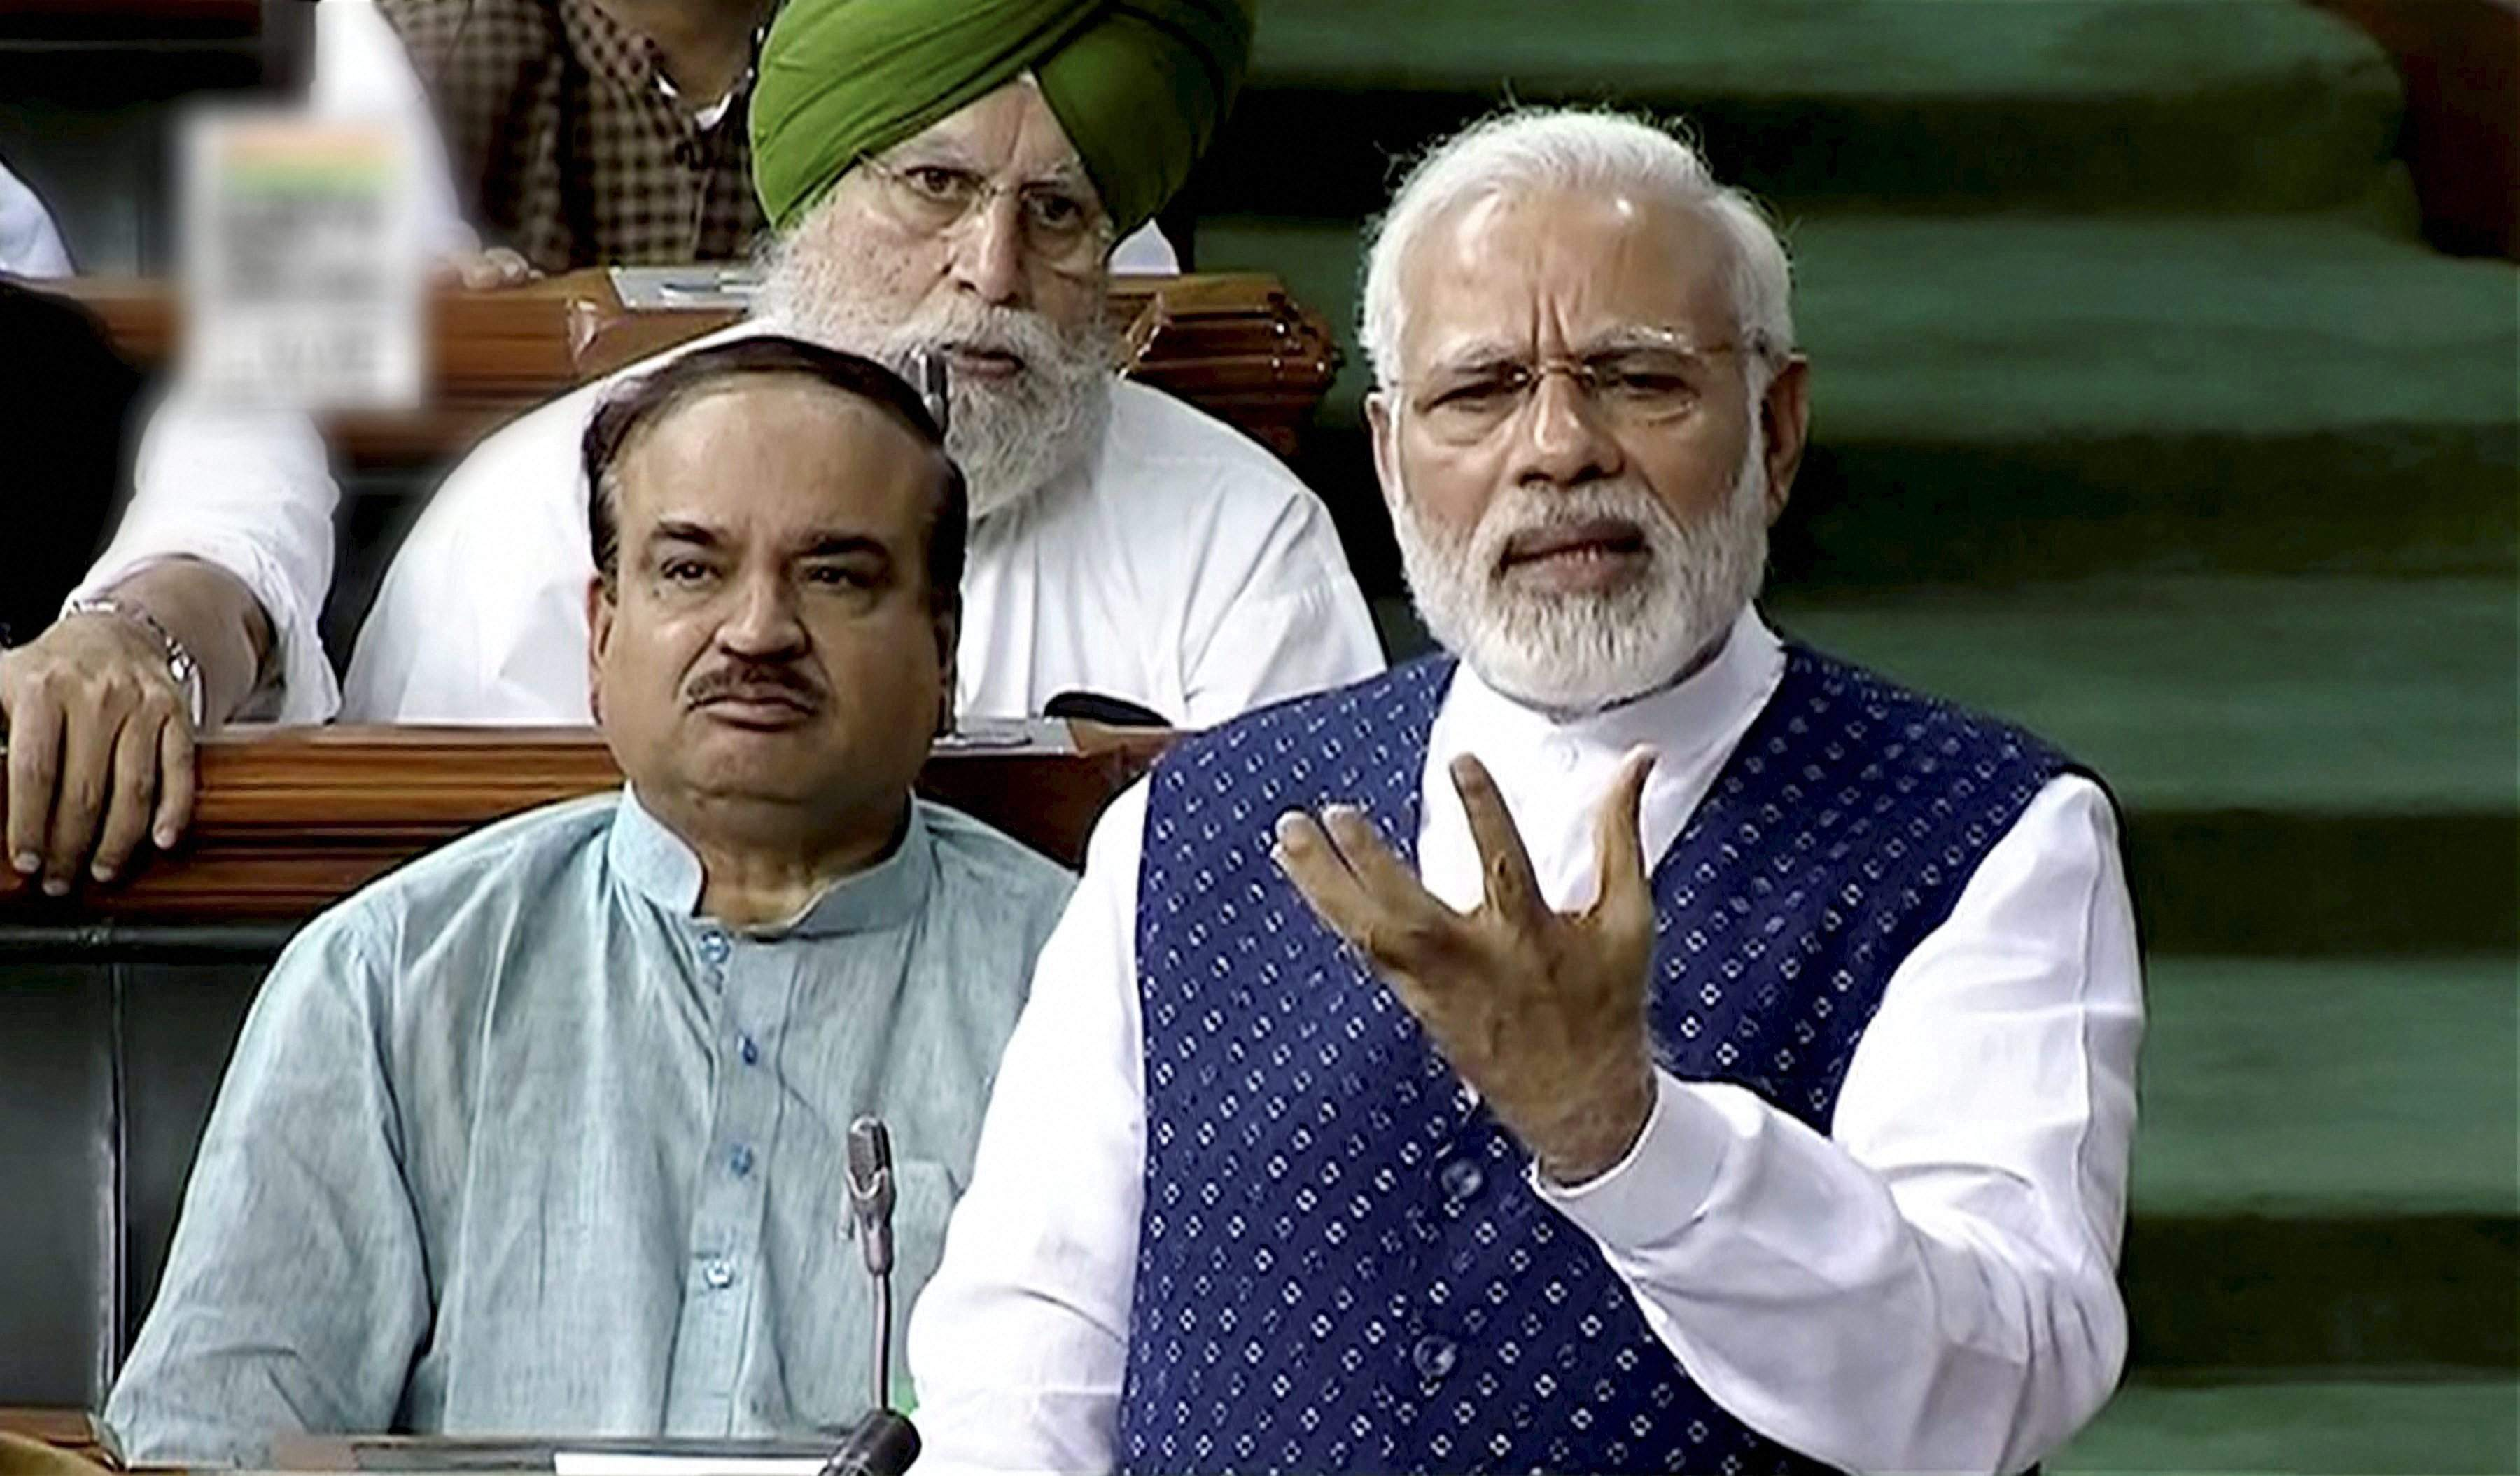 In Quit India spirit, Parl pitches for strengthening secularism, democracy